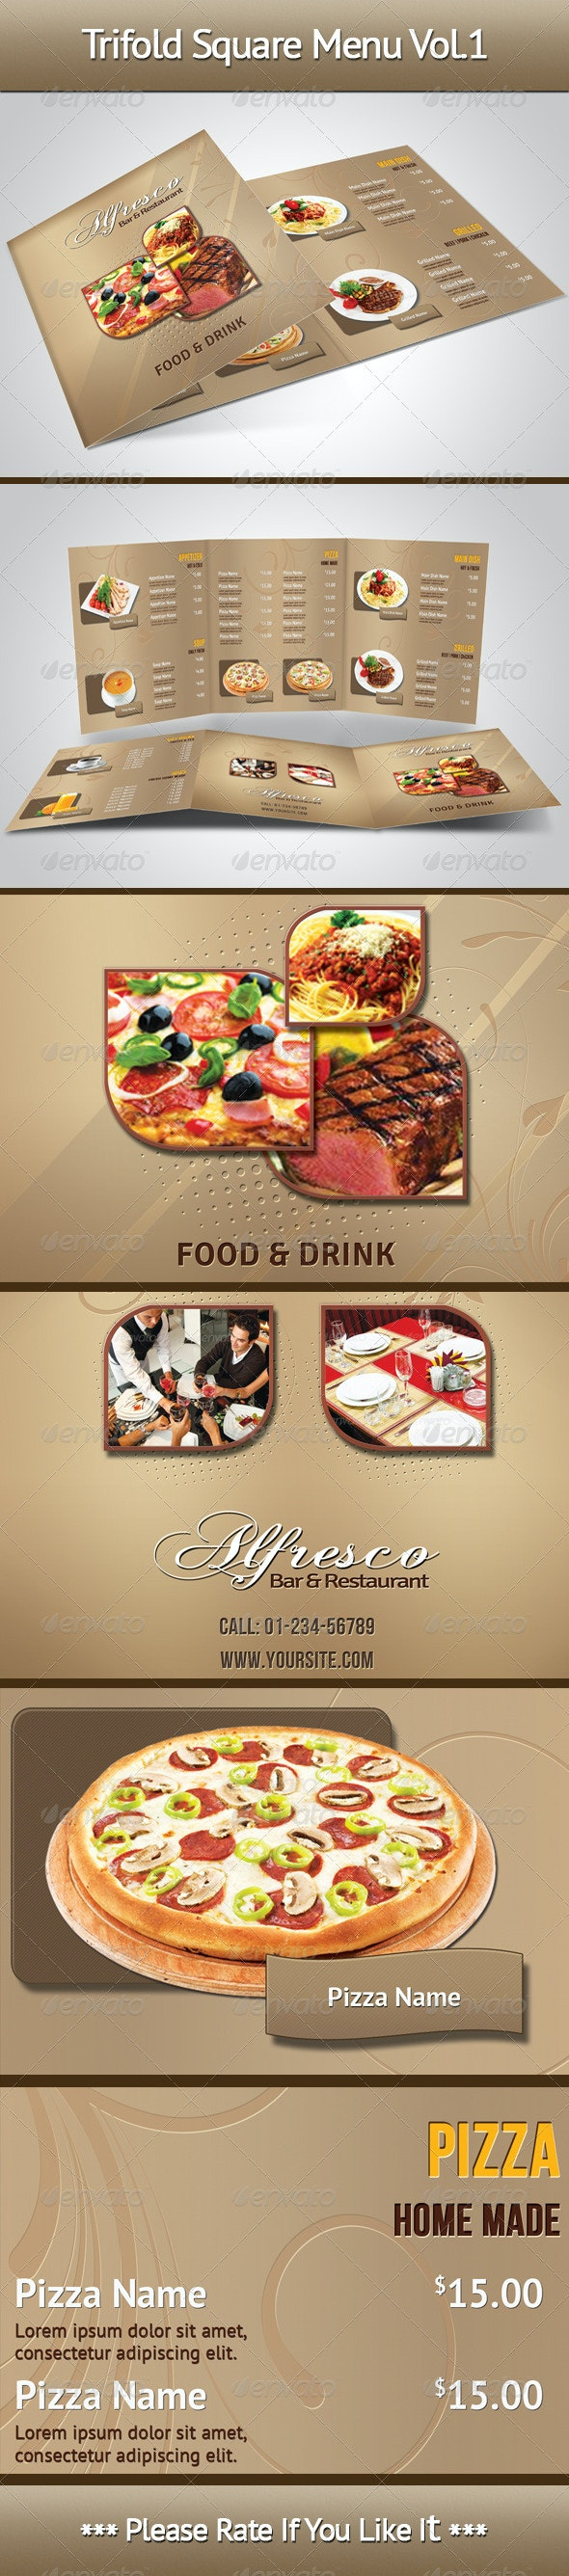 Trifold Square Menu Vol.1 - Food Menus Print Templates